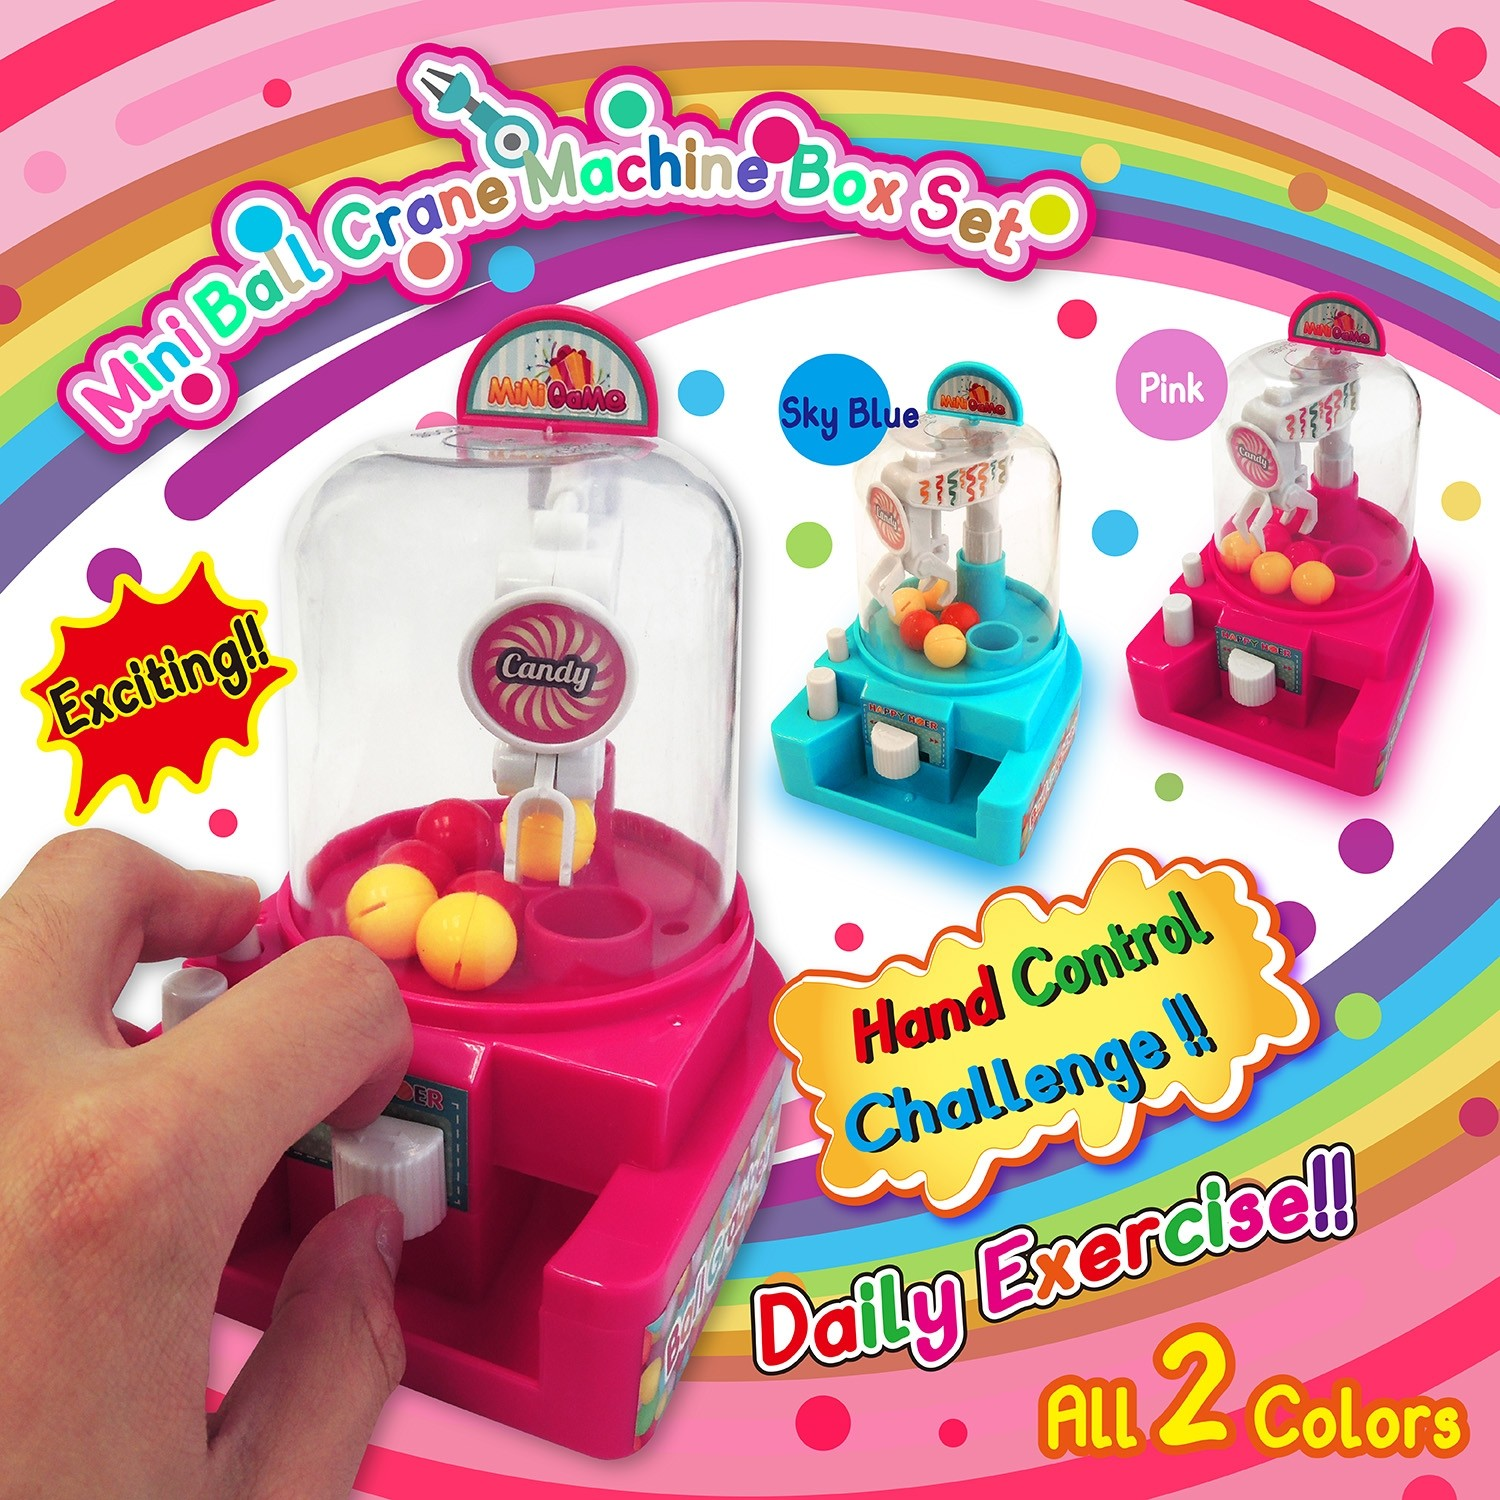 Mini Ball Crane Machine Box Set